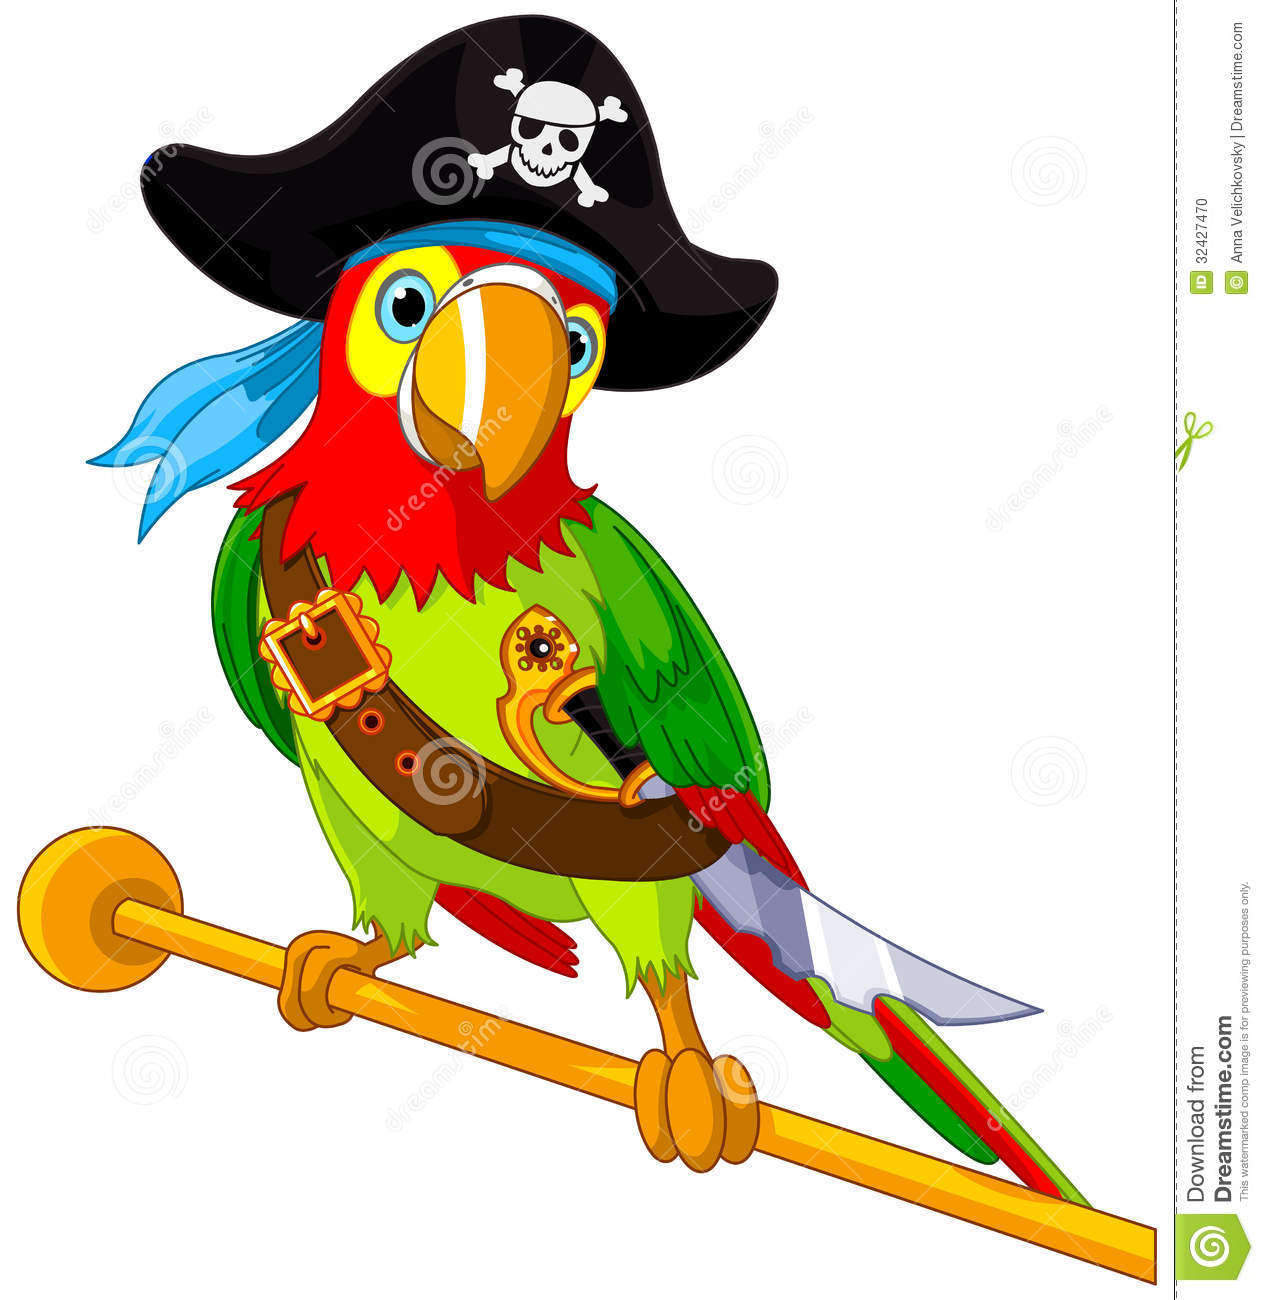 Pirate Parrot Clipart Stock Illustrations 281 Pirate Parrot Clipart Stock Illustrations Vectors Clipart Dreamstime